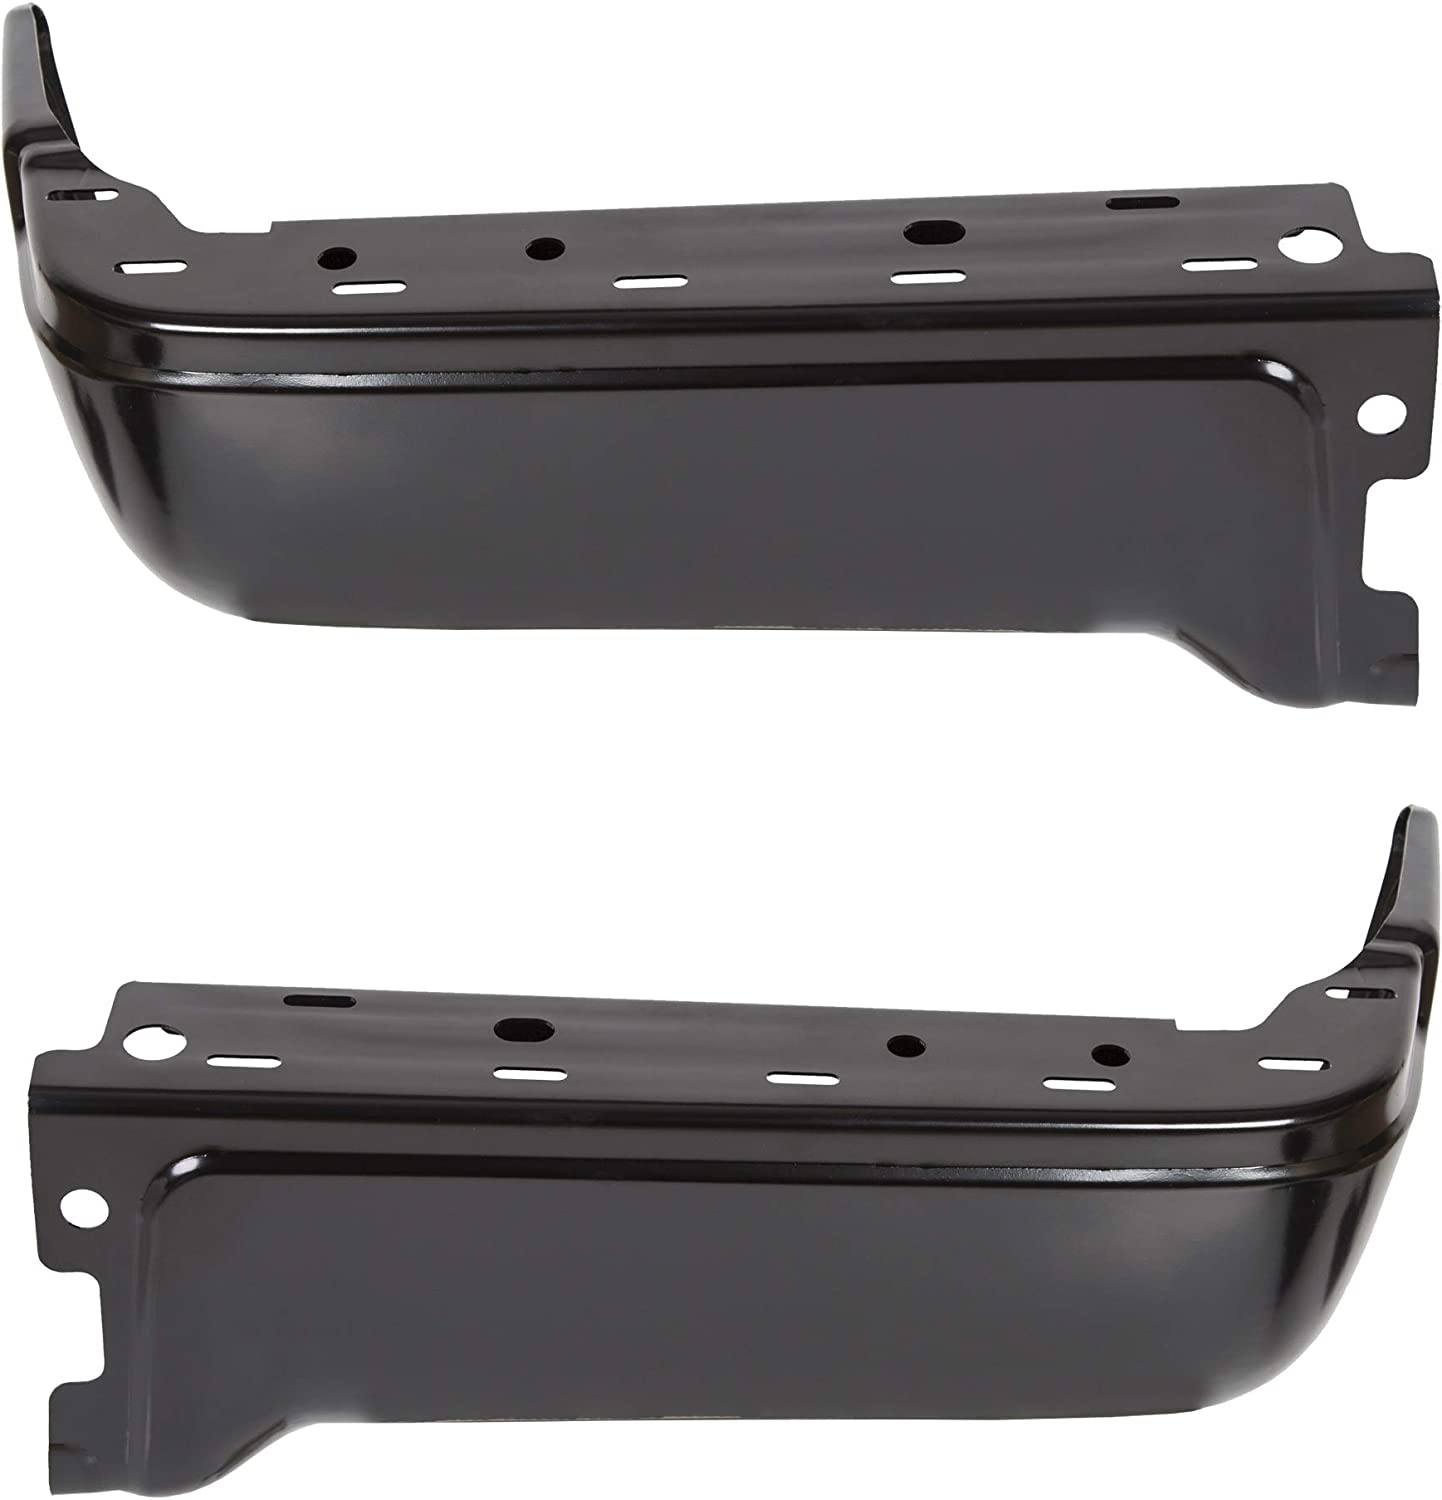 ECOTRIC New Rear Step Bumper Face Bar End Caps Black Powder Coated Pickup Driver Passenger Side for 2009-2014 Ford F150 Styleside